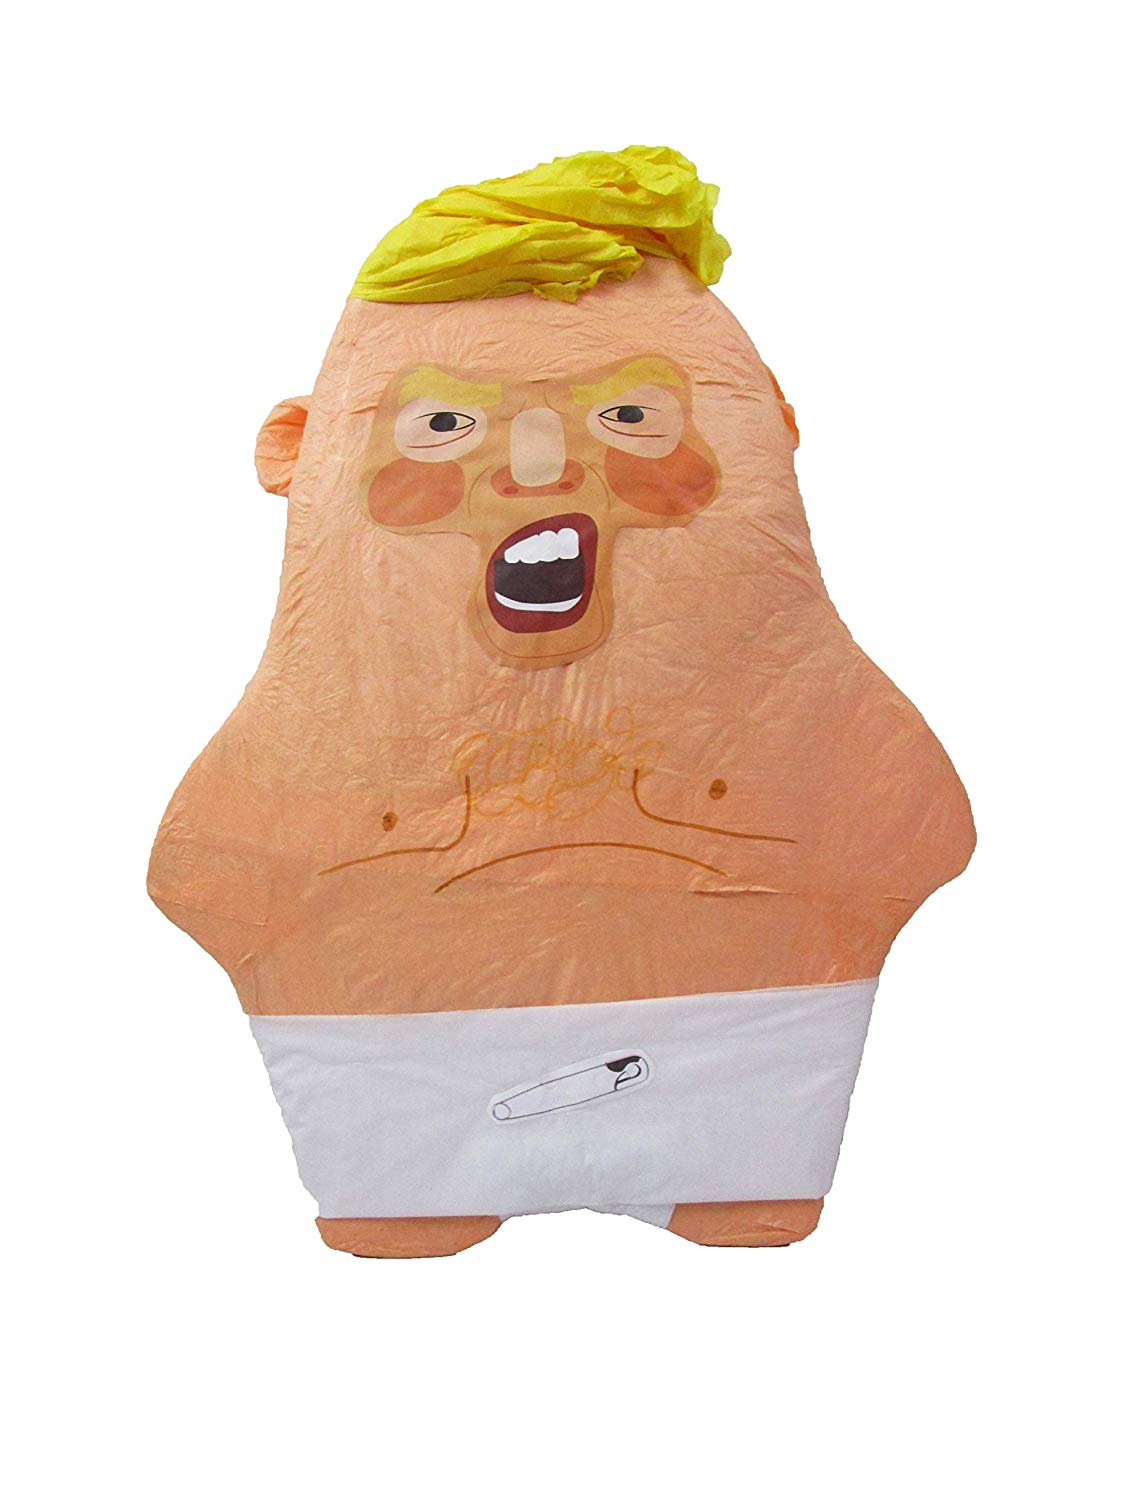 Baby Donald Trump Party Pinata